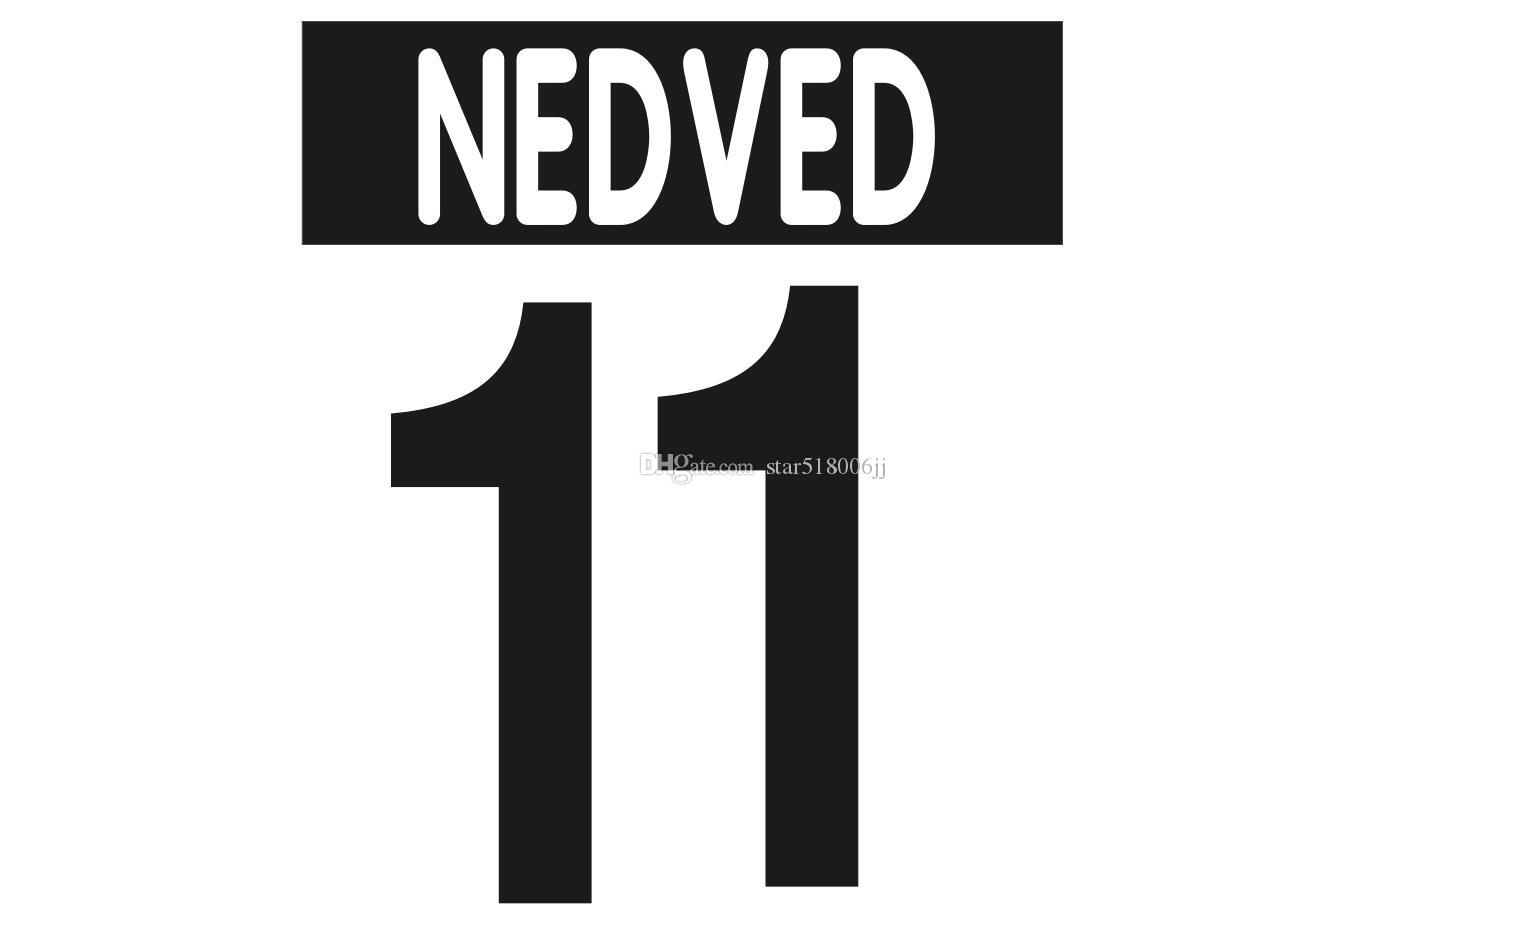 00-03 JUV Home hot printing soccer nameset #11 NEDVED BUFFON player's stamping stickers printed numbering football lettering